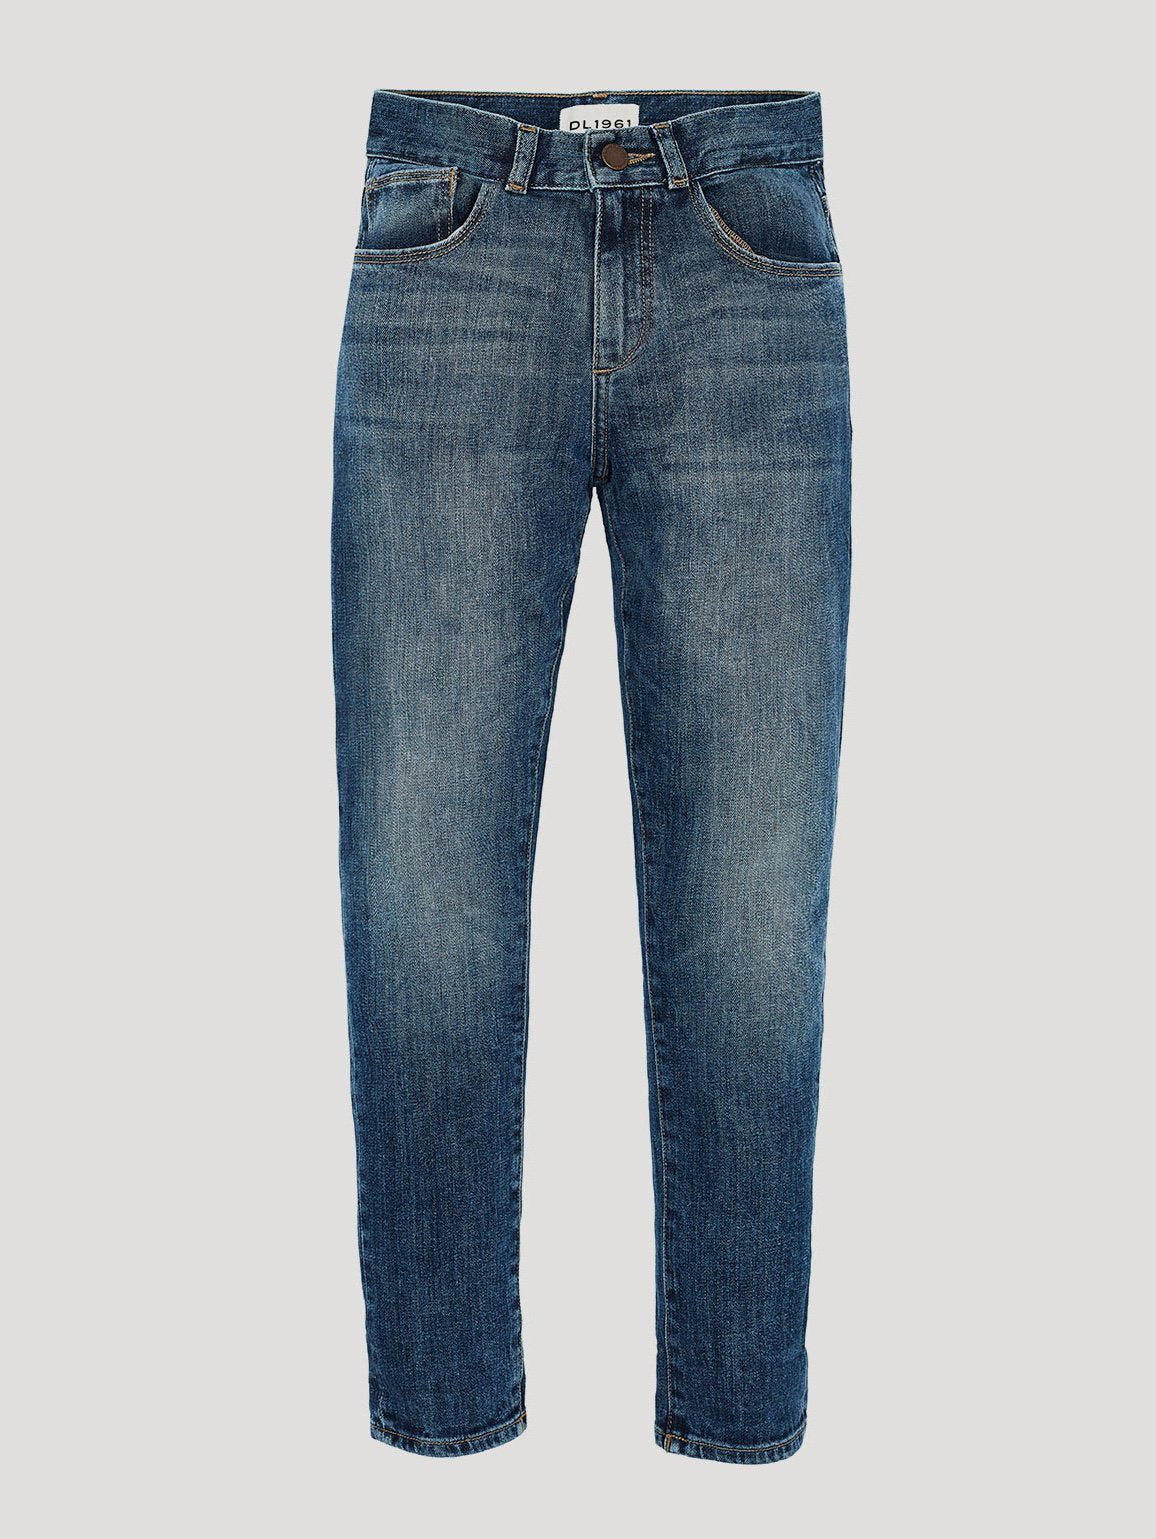 Image of Harry/B Slouchy Skinny / Rail